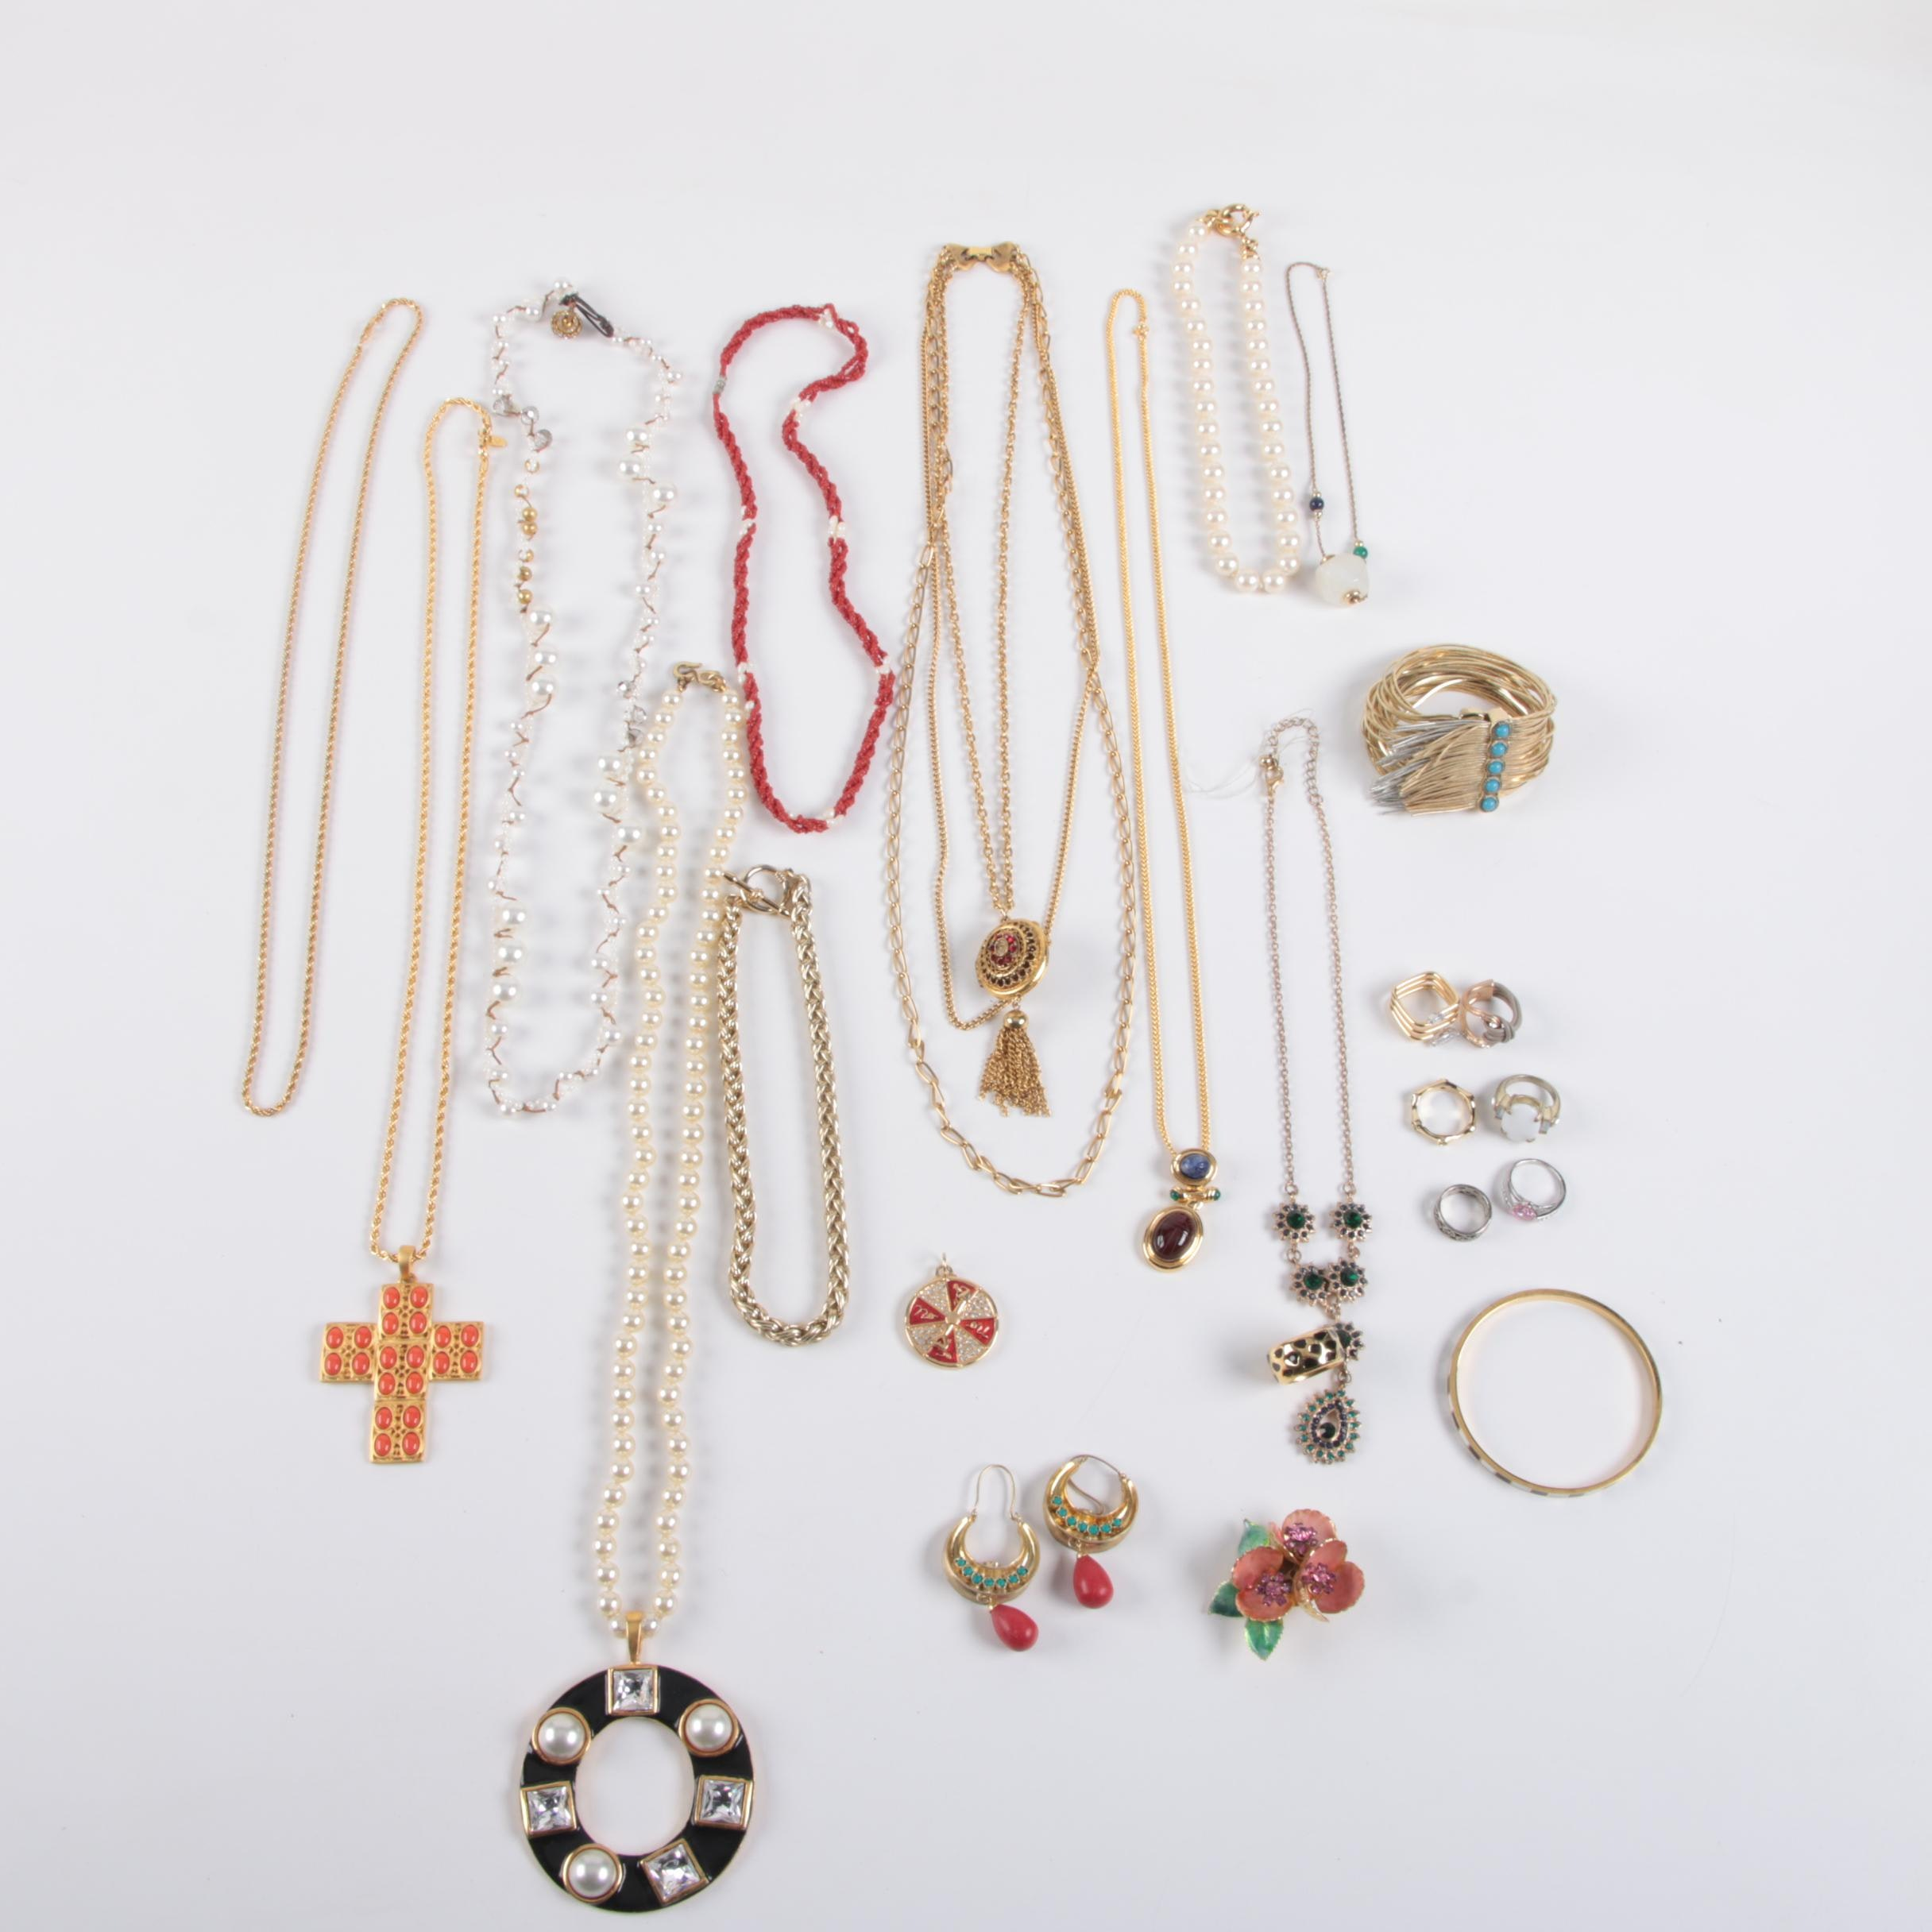 Assortment of Jewelry Including Weiss and Kate Spade